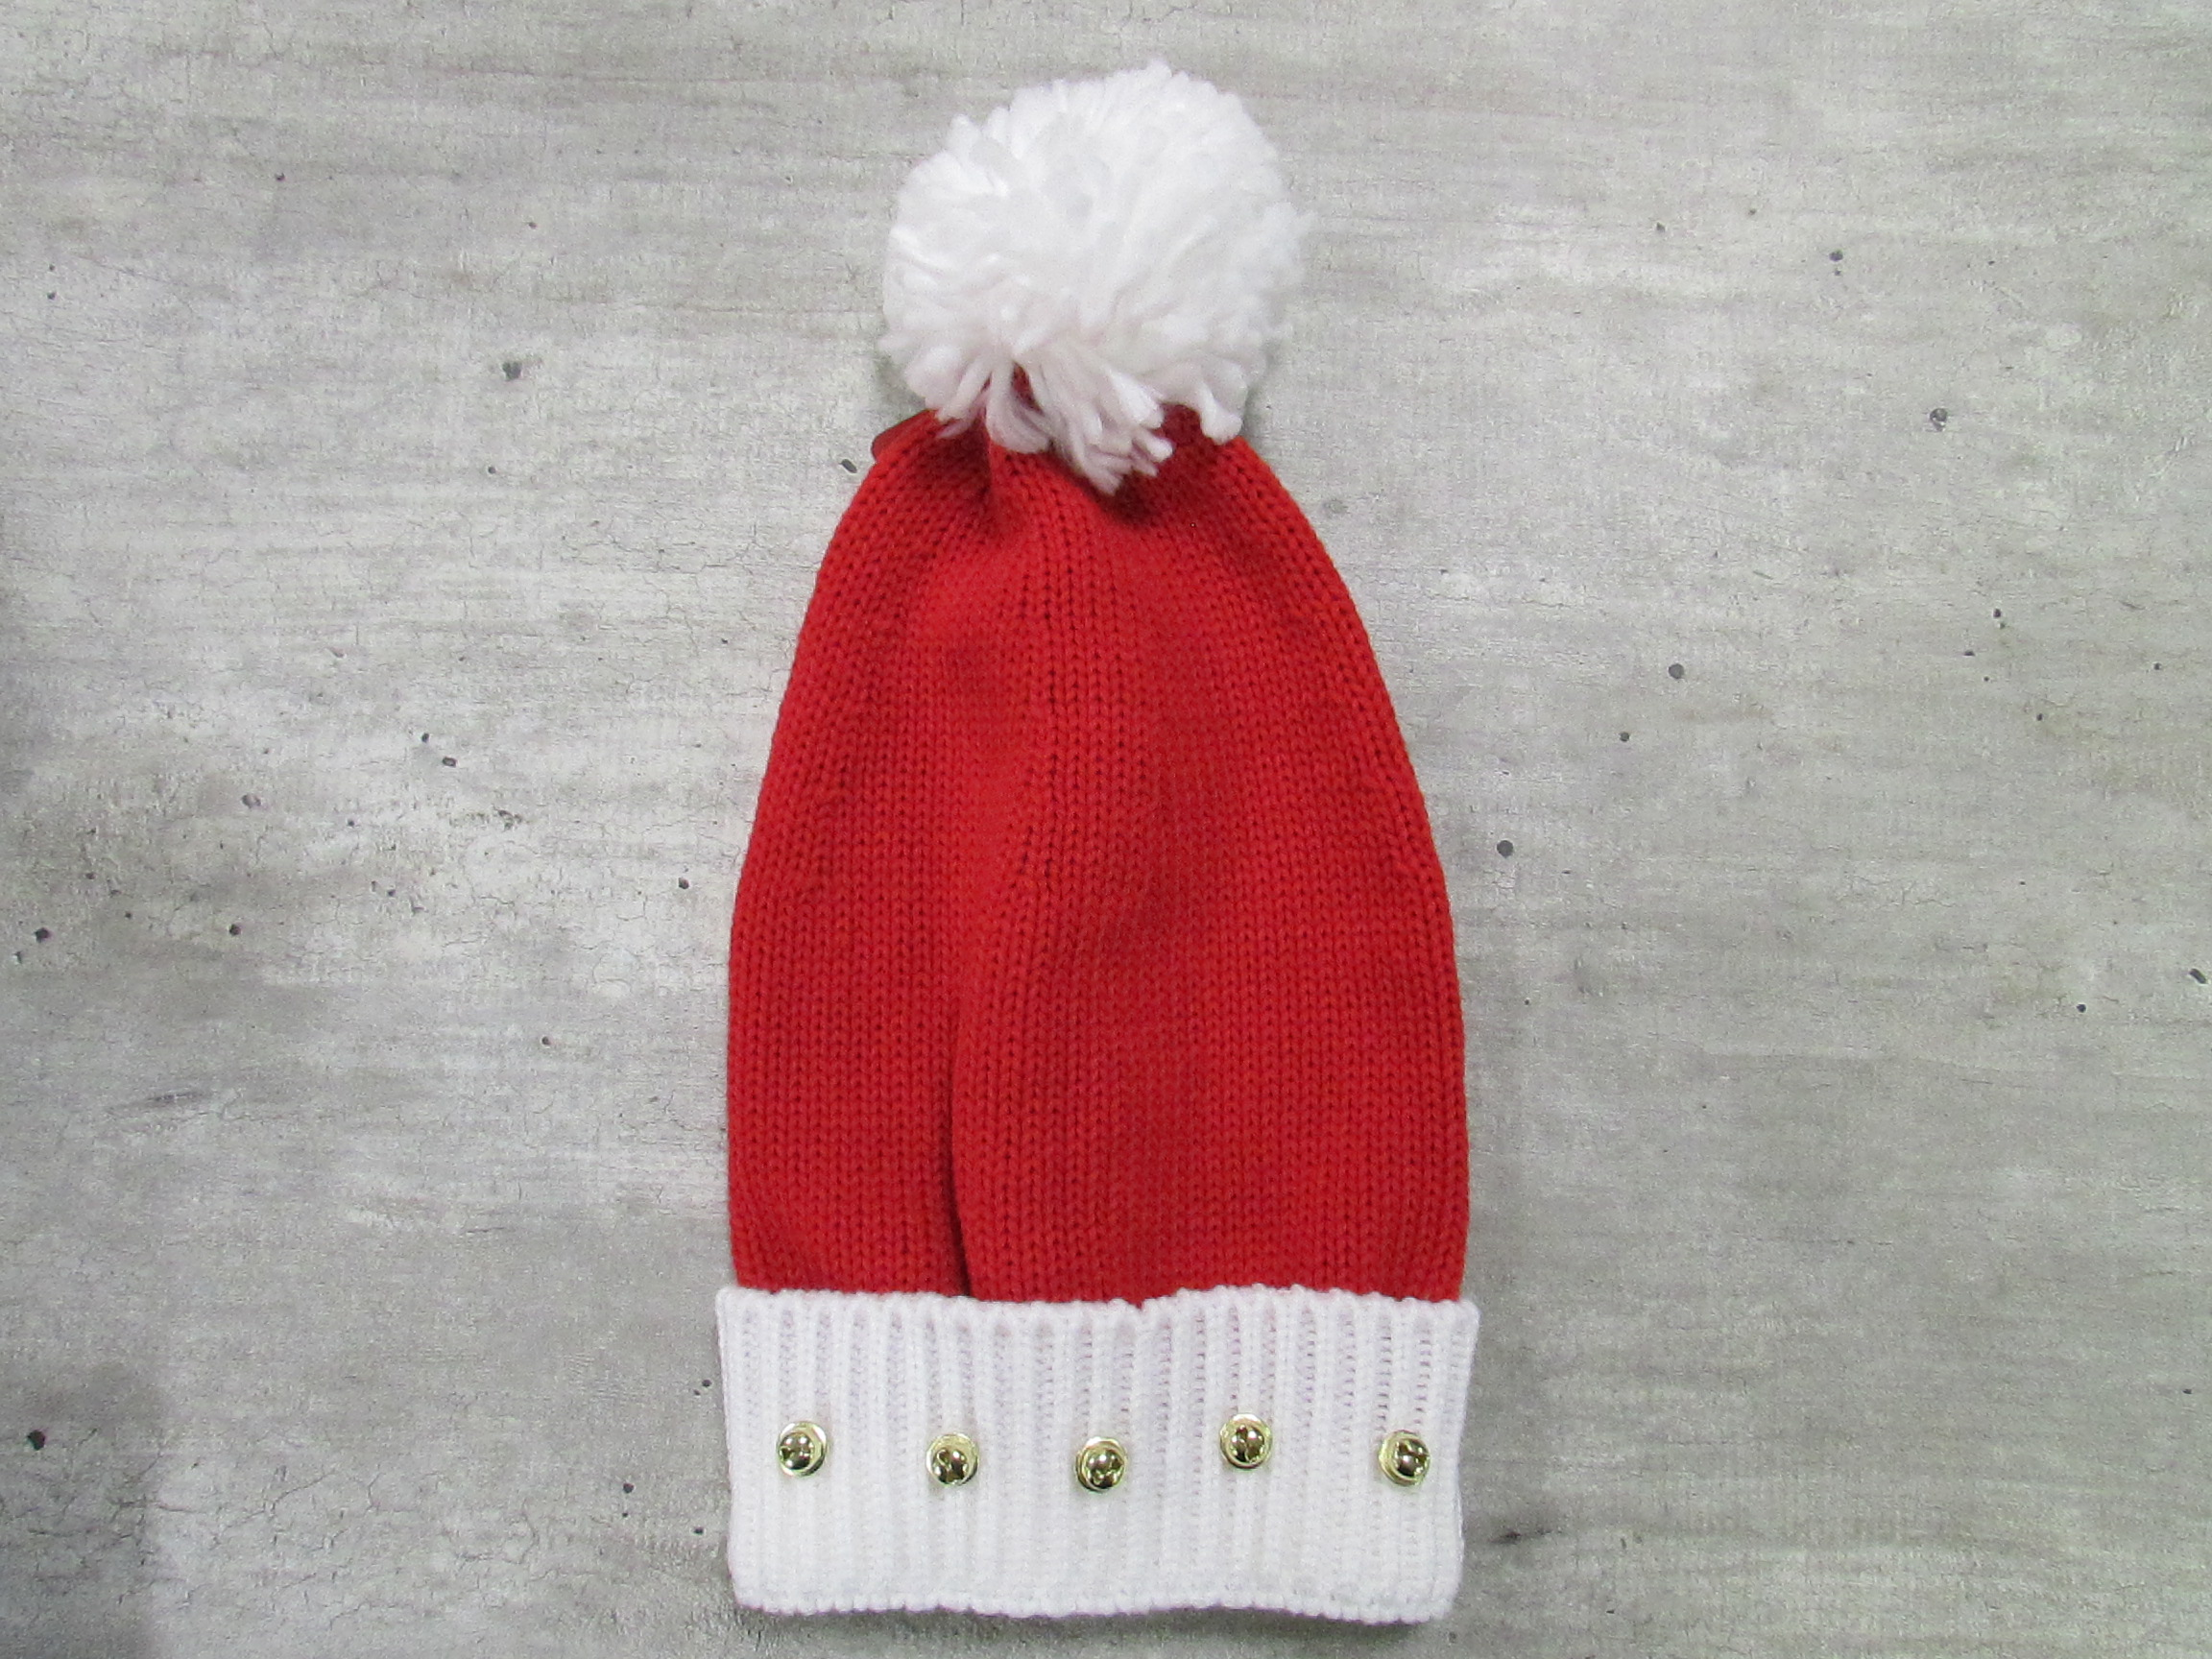 Image for the Holiday Beanie product